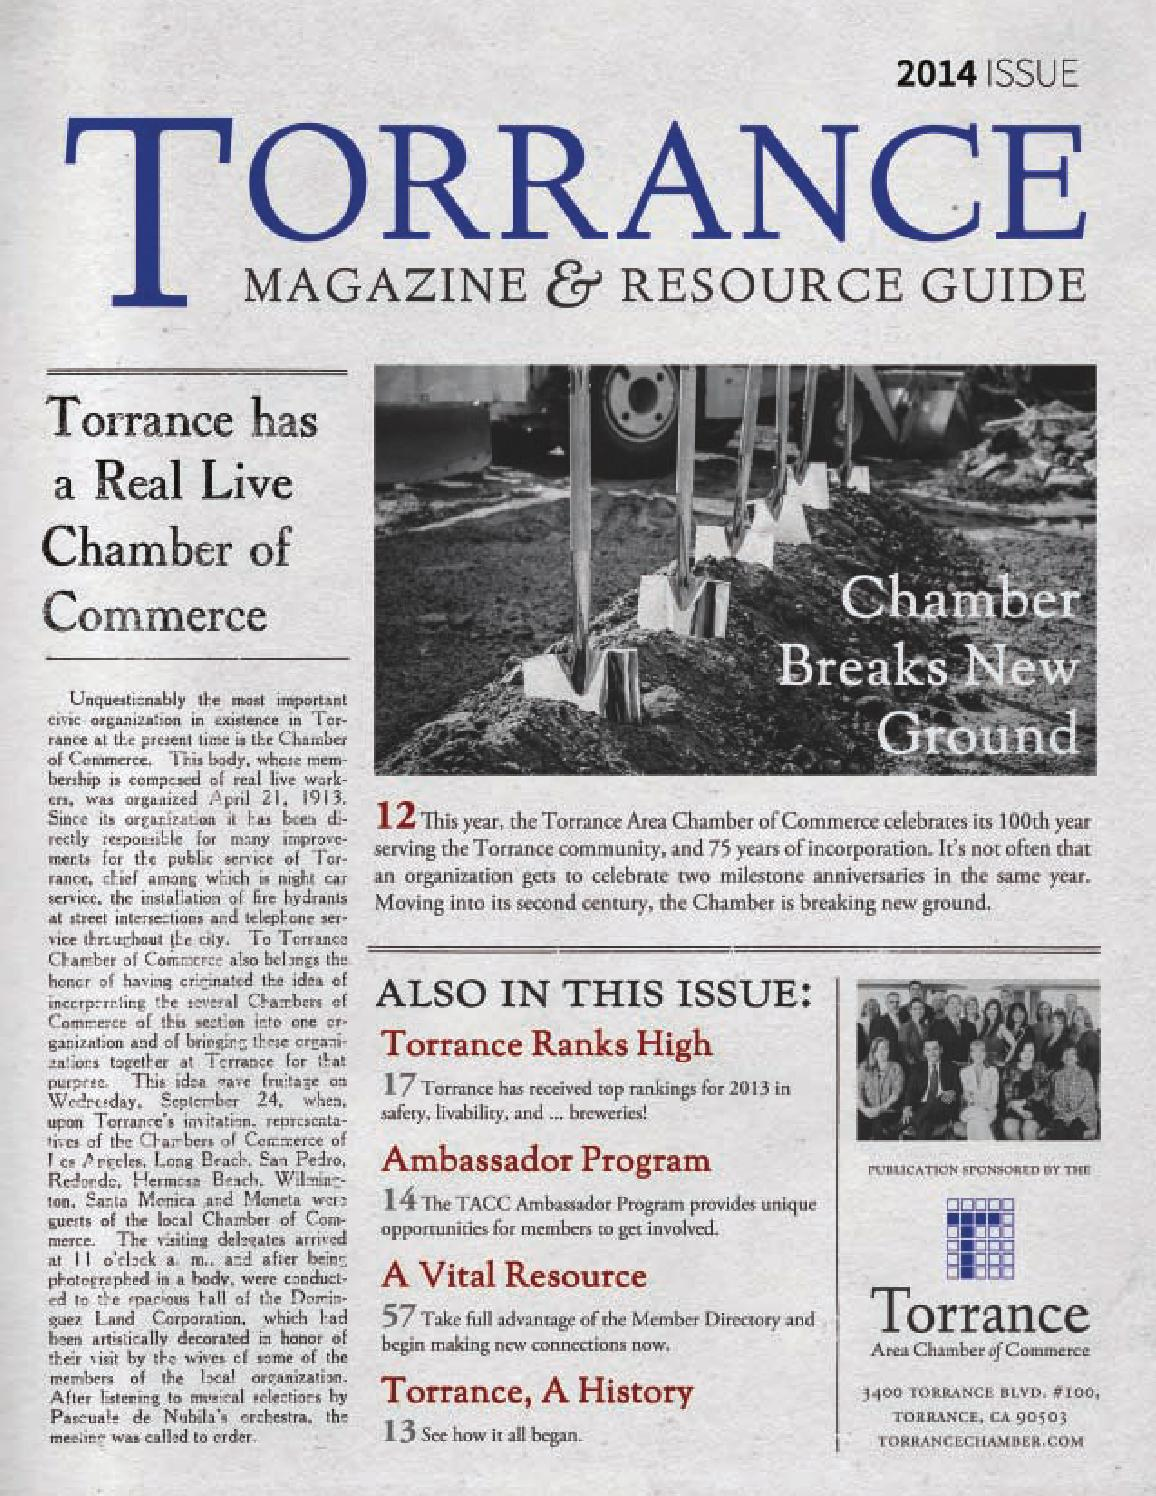 2014 Torrance Magazine Resource Guide By Torrance Area